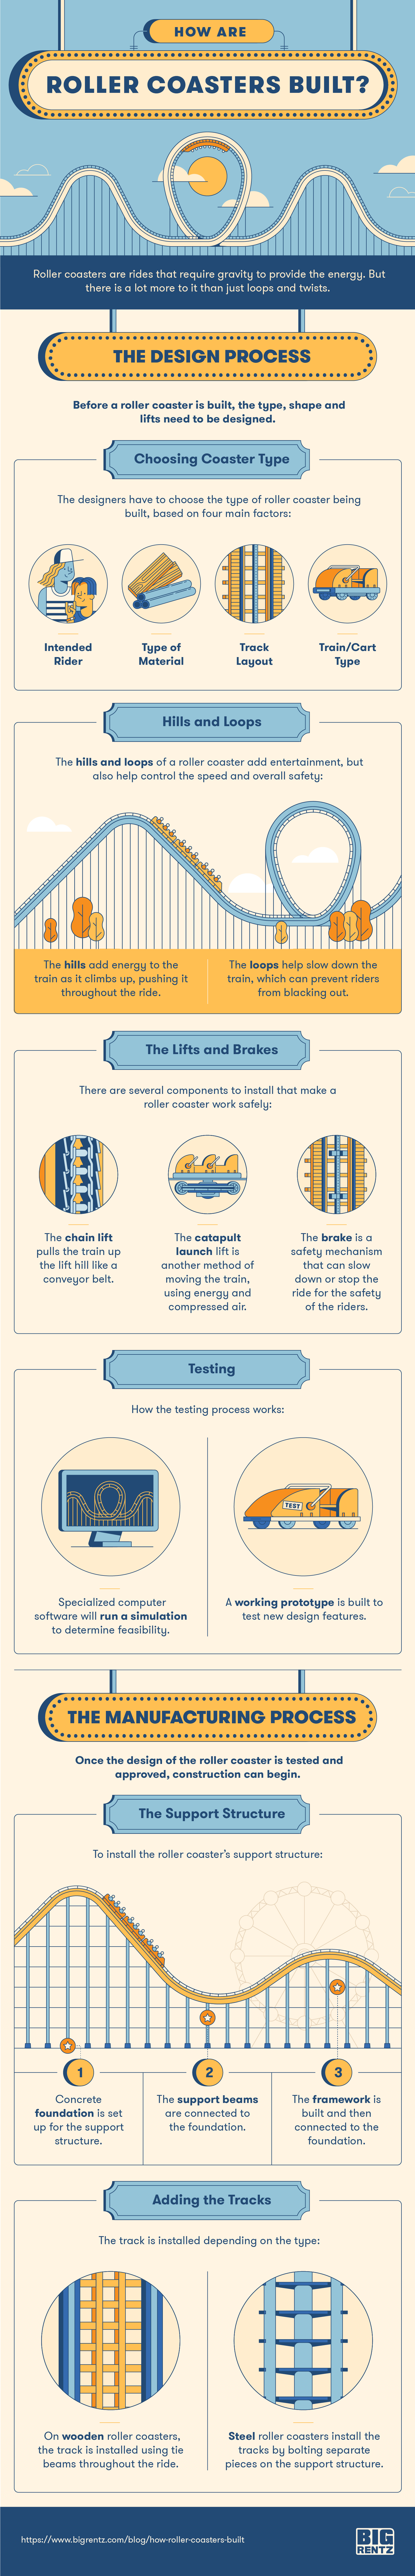 How Roller Coasters Are Built Infographic BigRentz